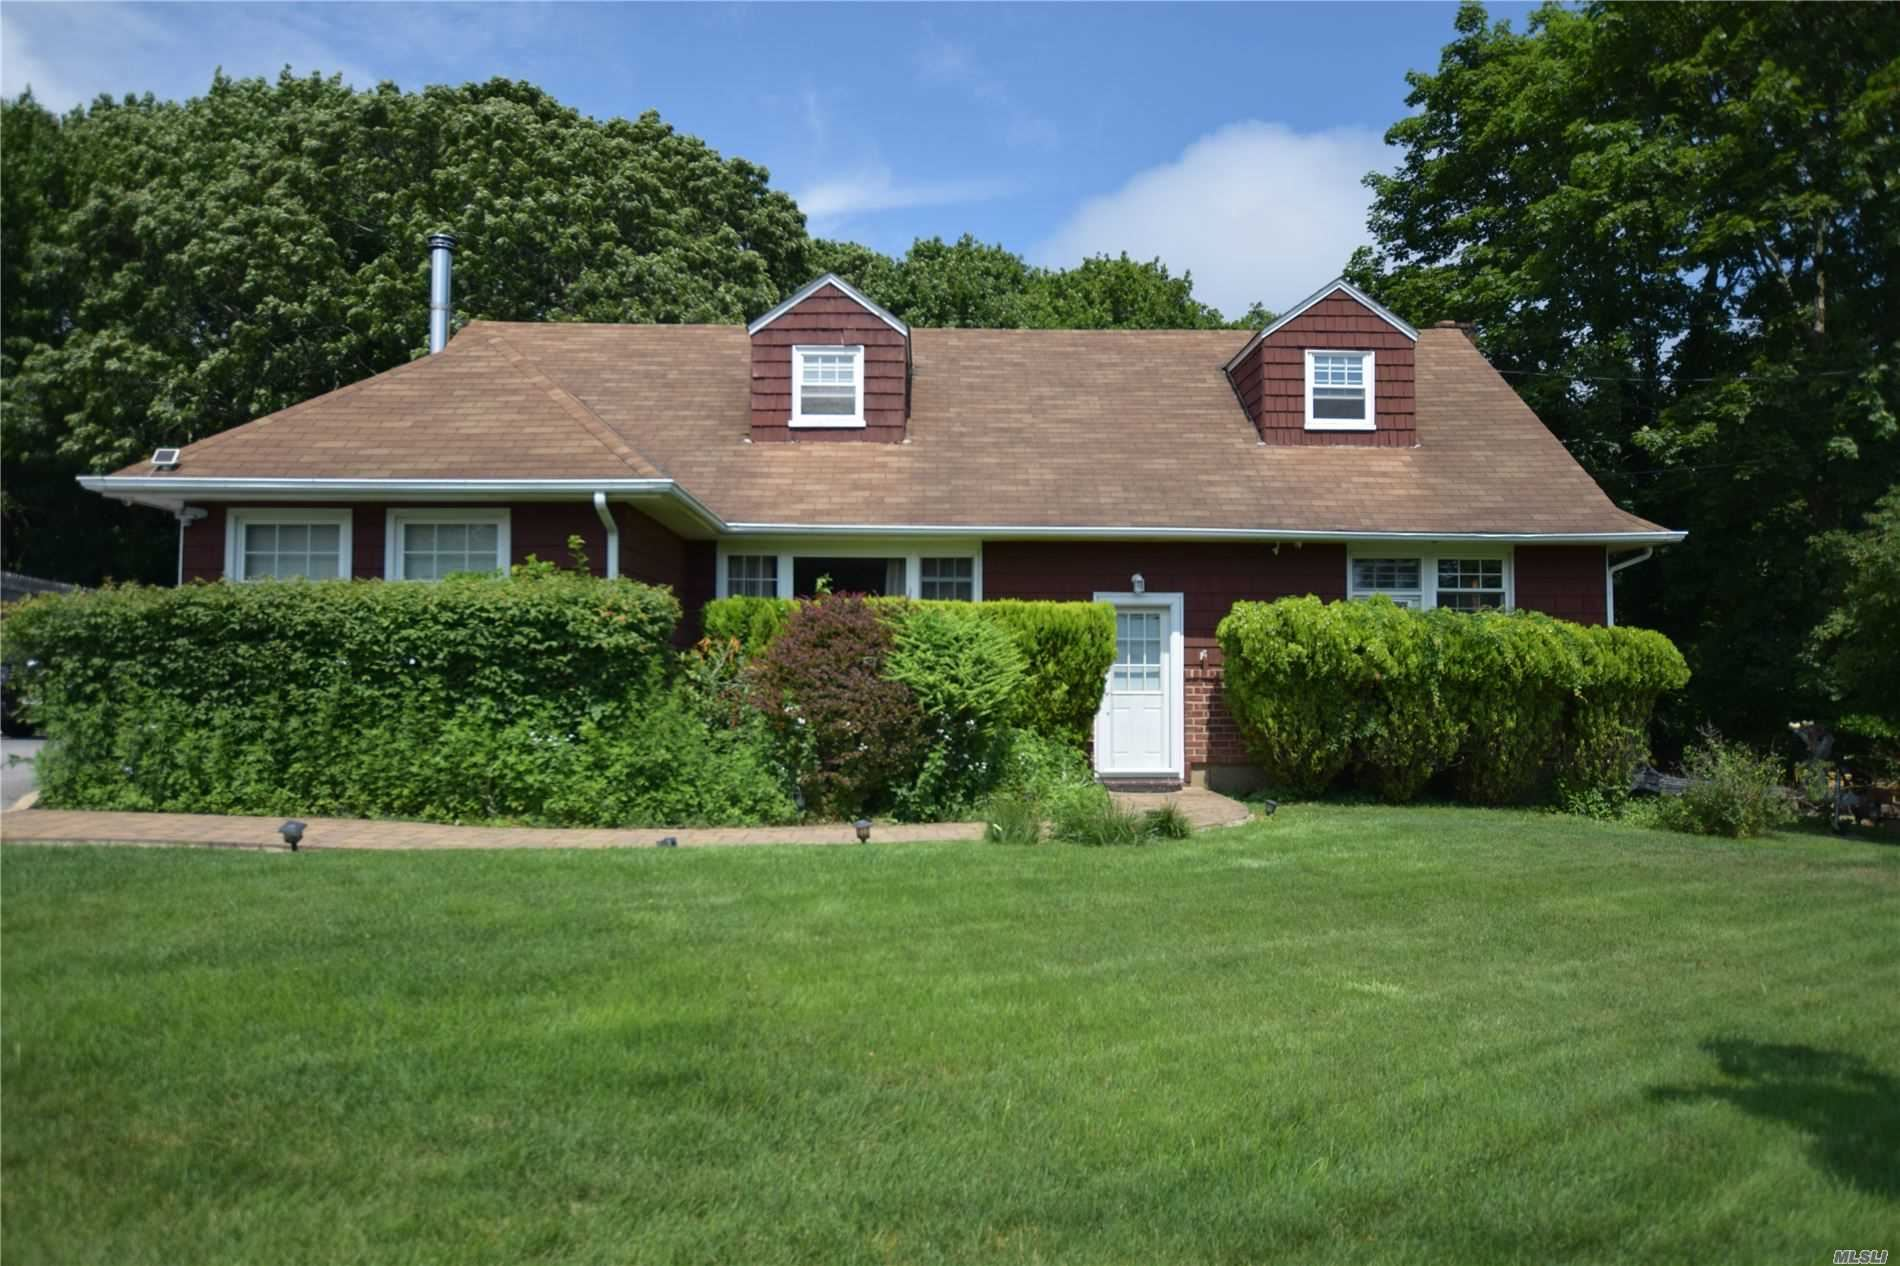 15 Woodland Avenue, Brookhaven, NY 11719 - MLS#: 3188308